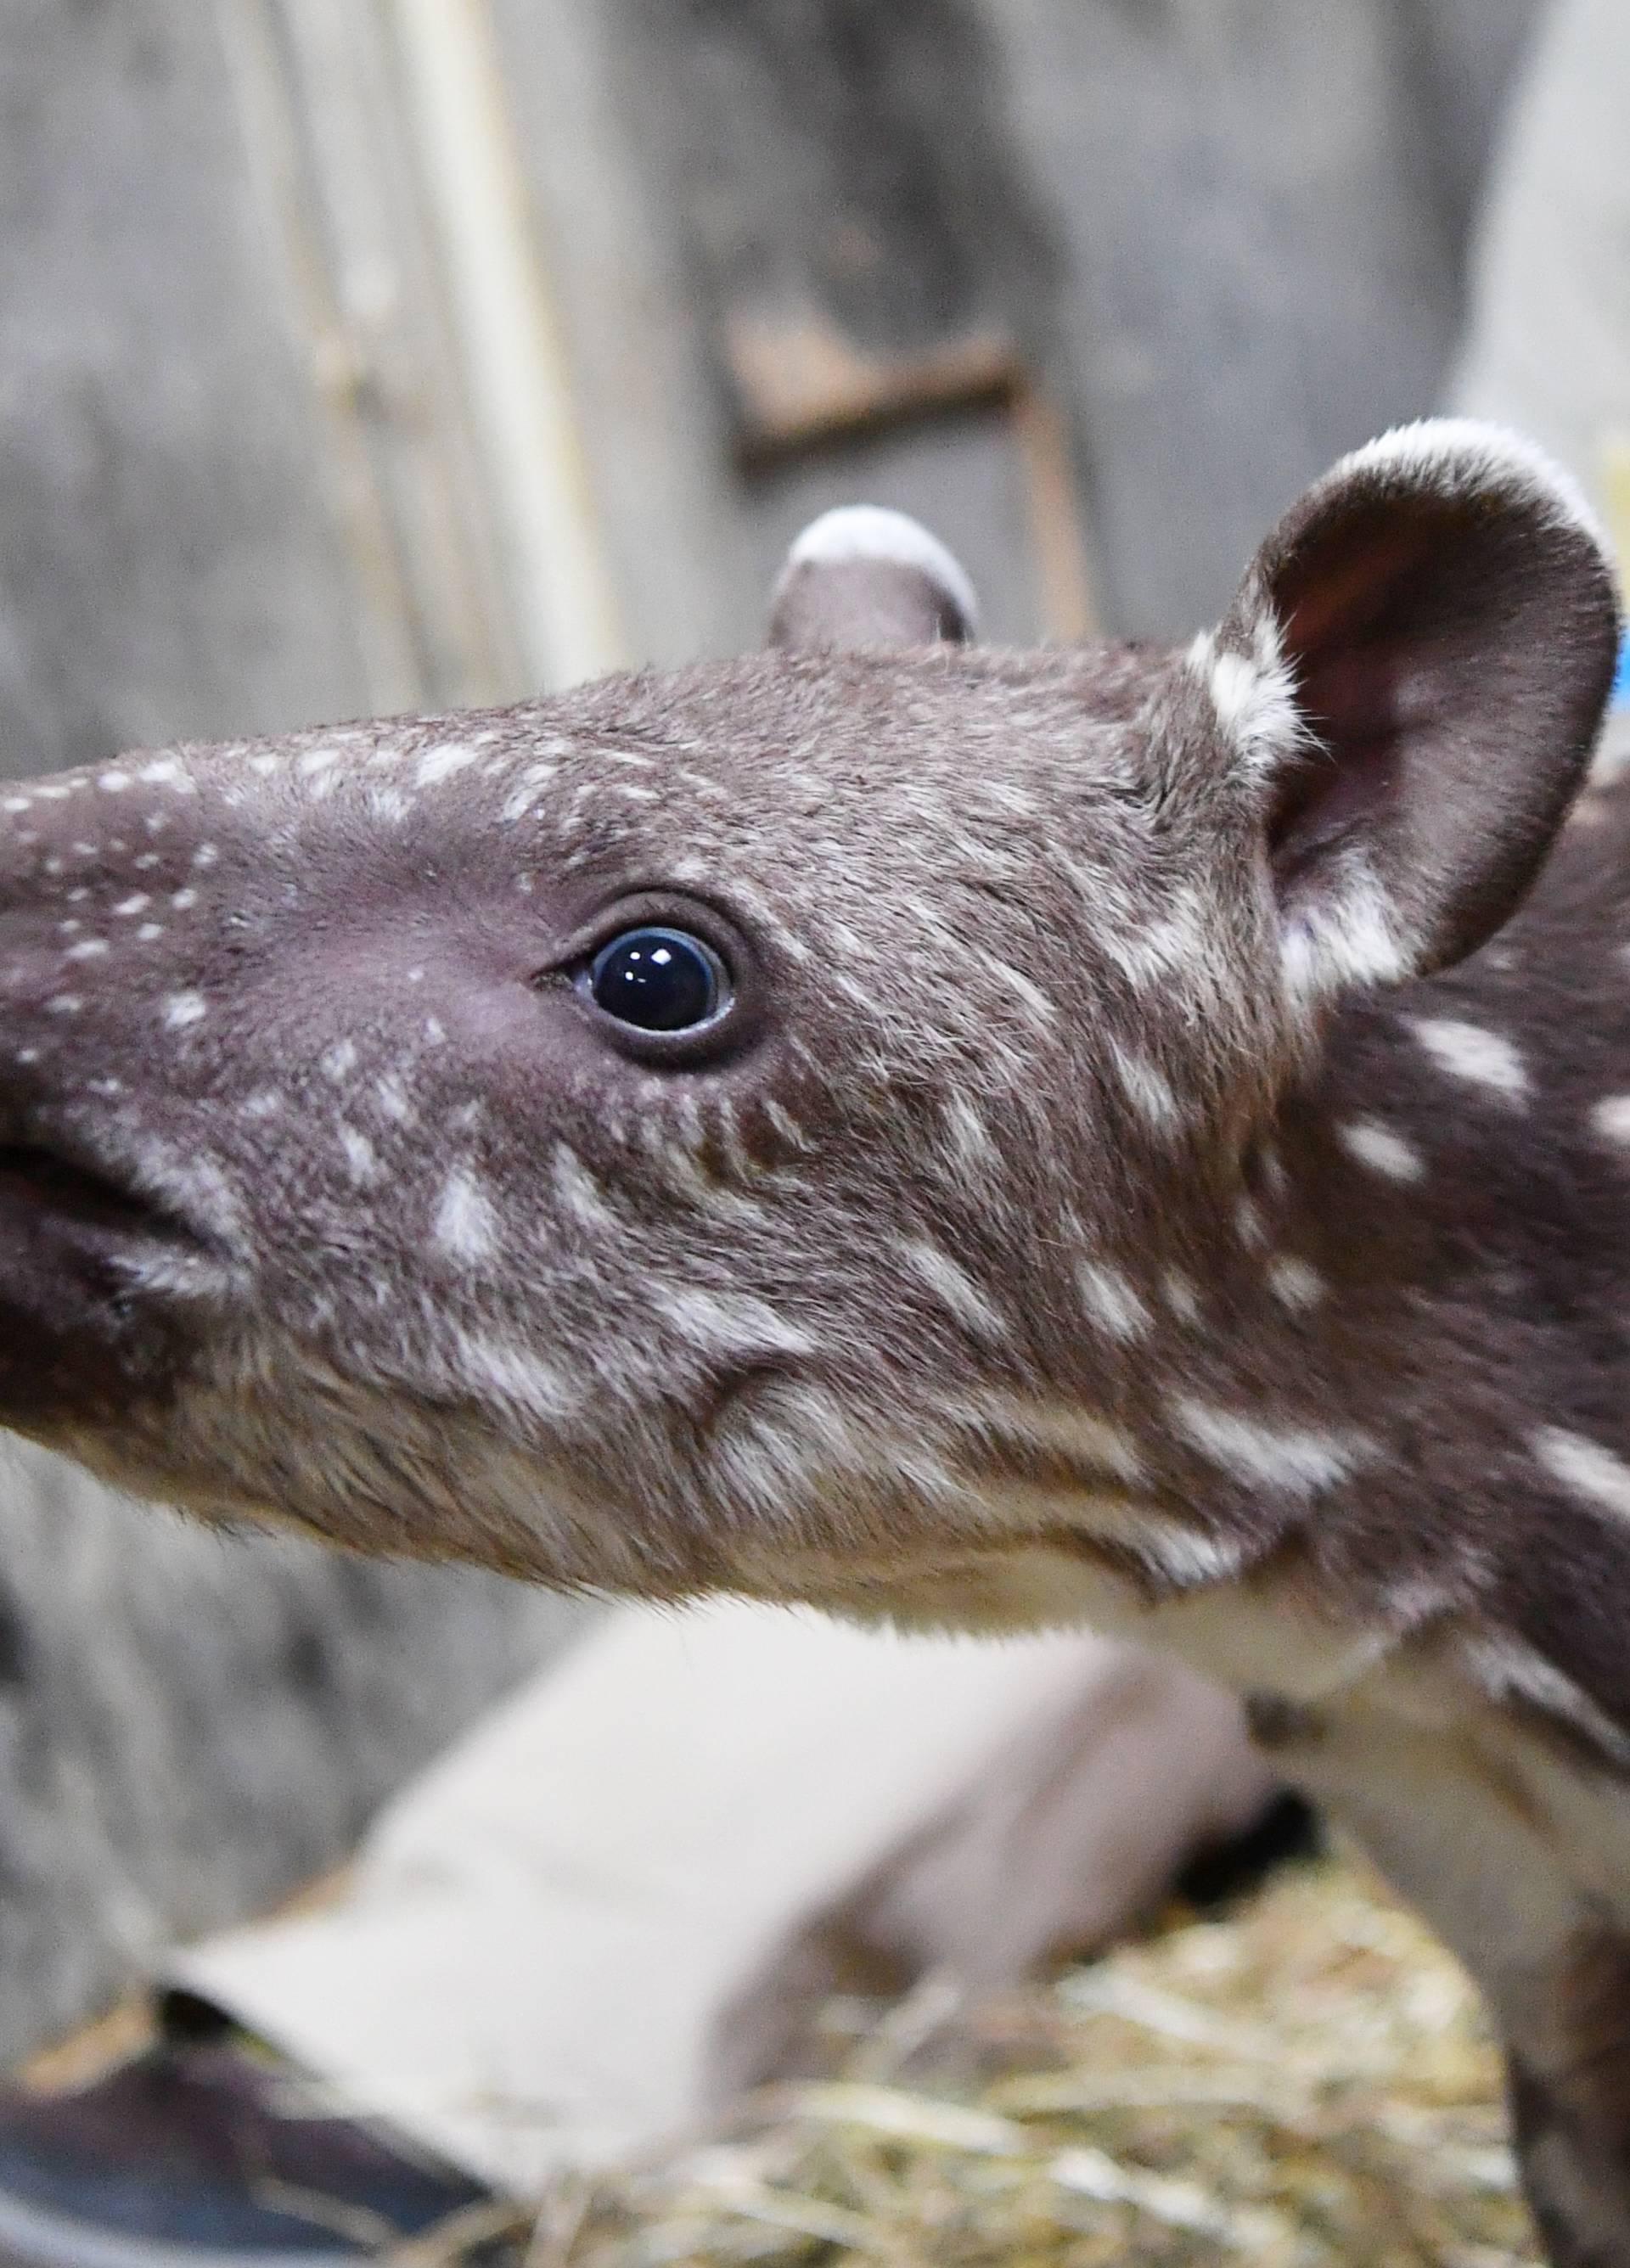 14-day-old South American tapir presented